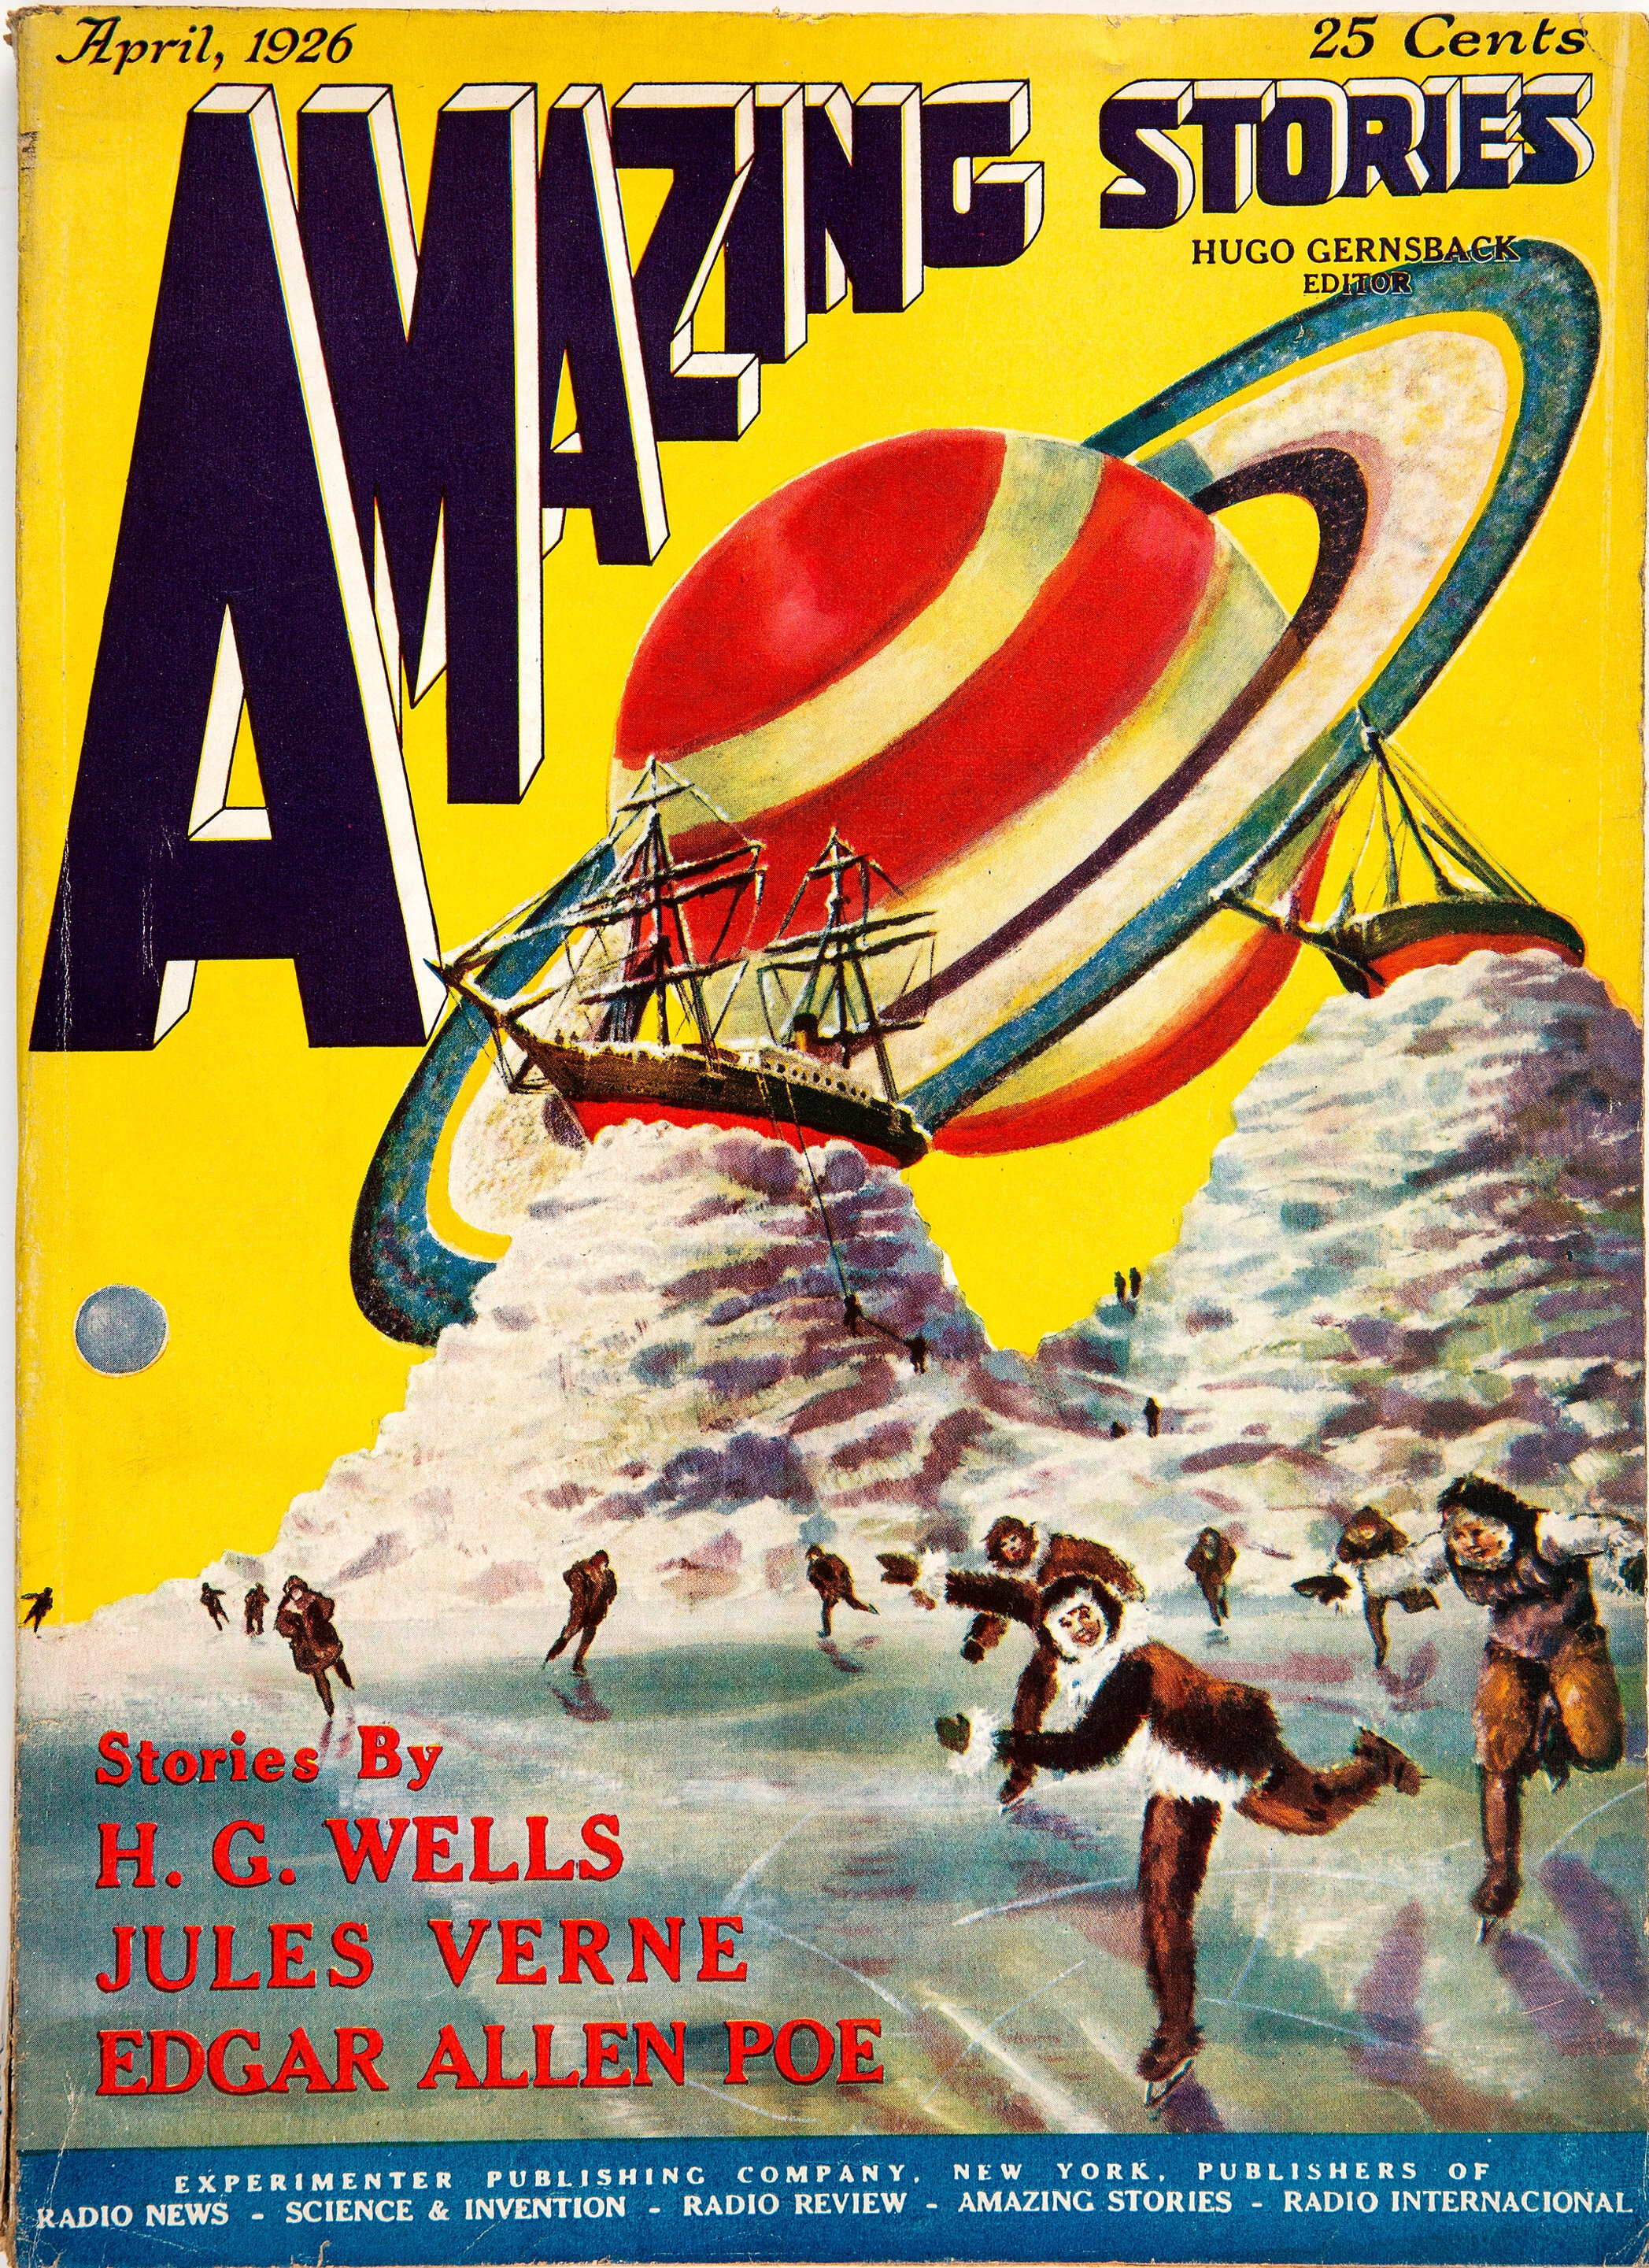 History of US science fiction and fantasy magazines to 1950  Wikipedia